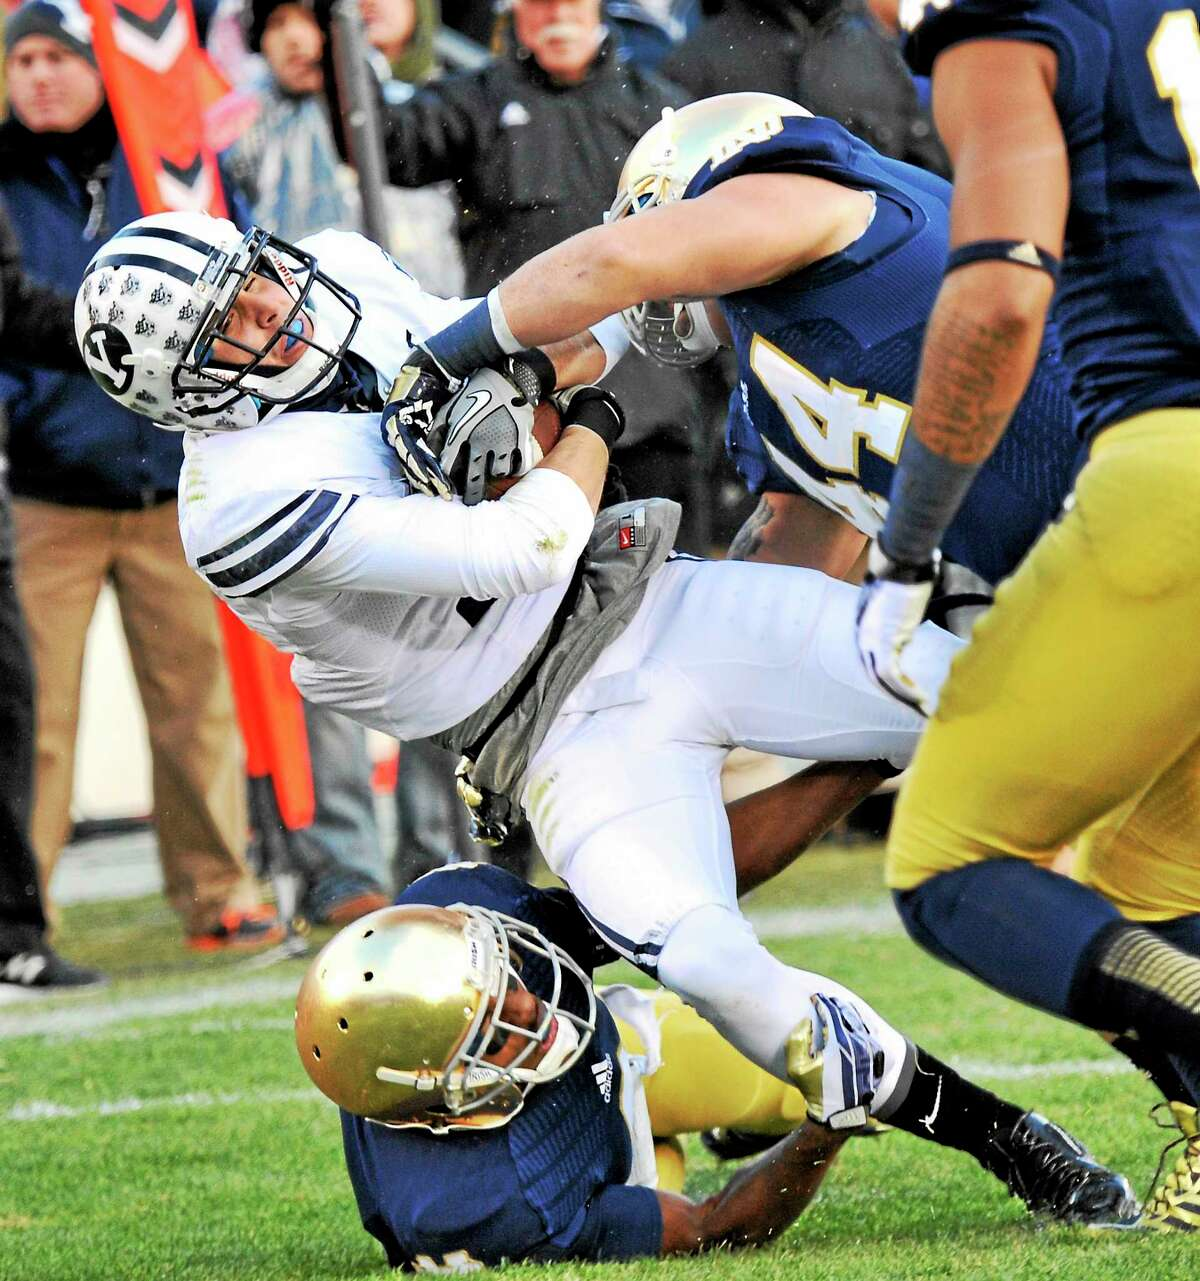 BYU wide receiver Skyley Ridley is tackled by Notre Dame linebacker Carlo Calabrese, right, and cornerback KaiVarae Russell during a Nov. 23, 2013, game in South Bend, Ind. Calabrese says new UConn football coach Bob Diaco will bring a winning culture to the Huskies.